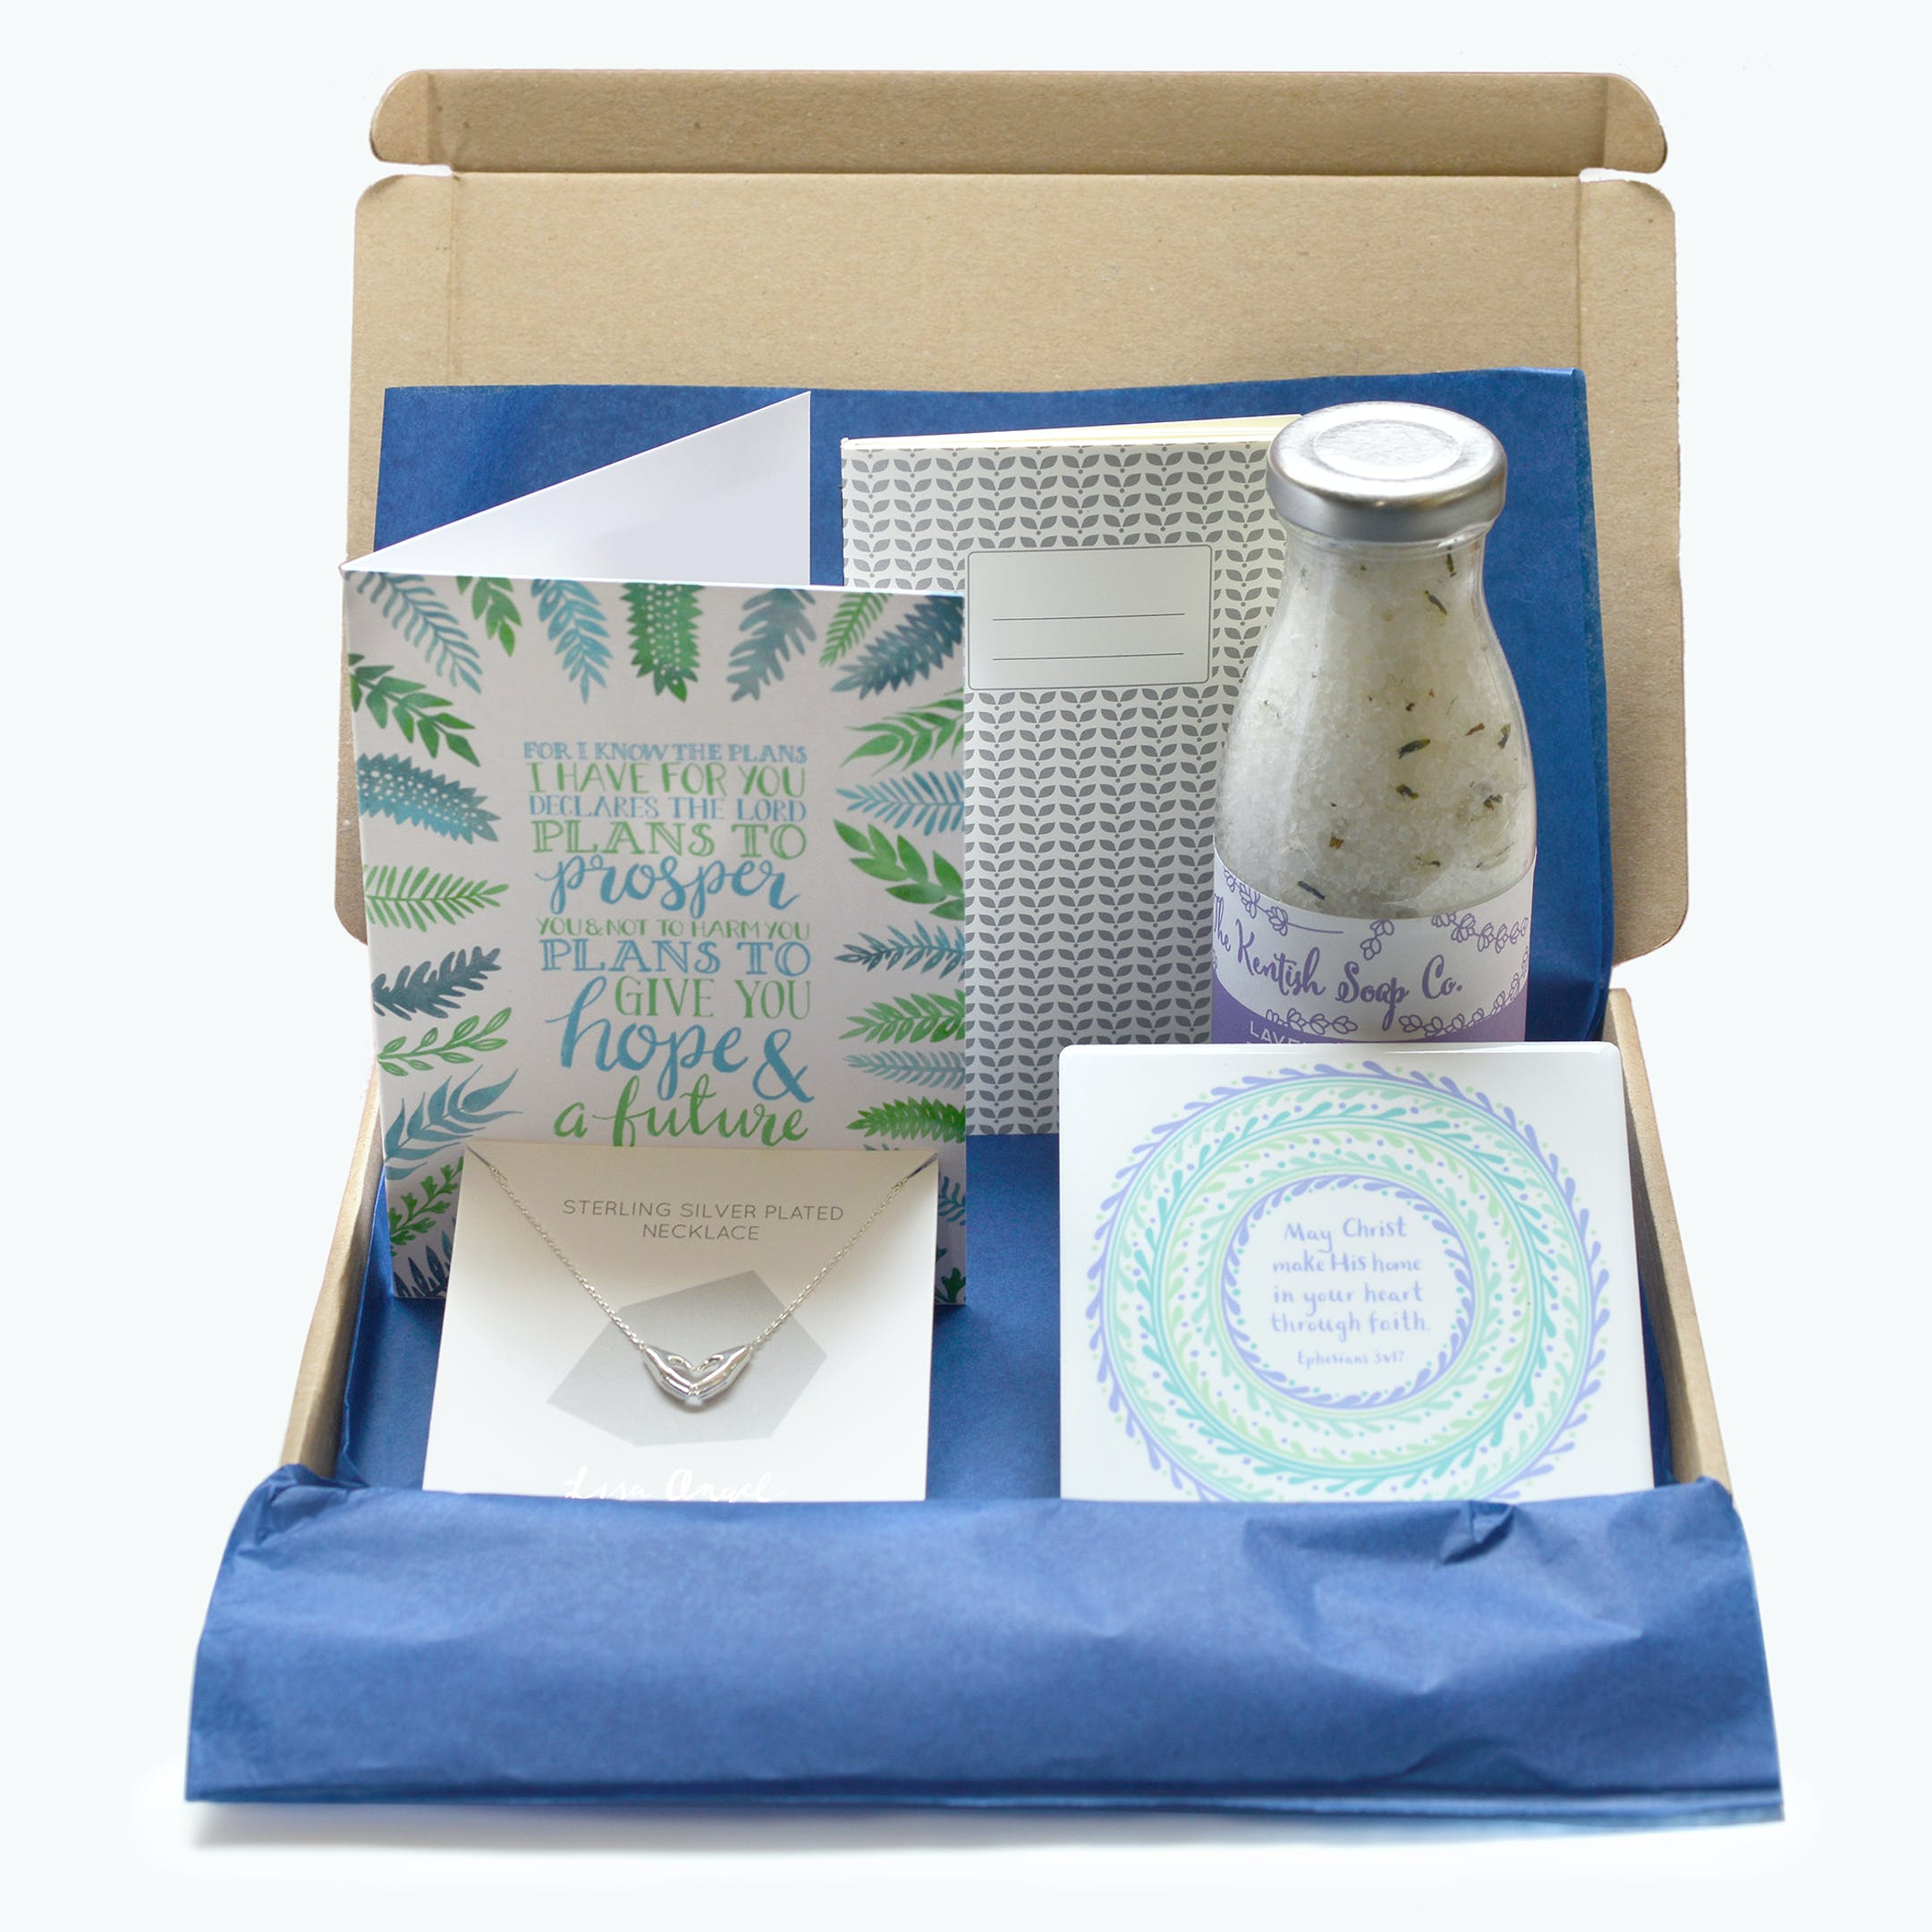 Christ make his home Christian Gift Boxes by Frog and Gnome @ Cheerfully Given